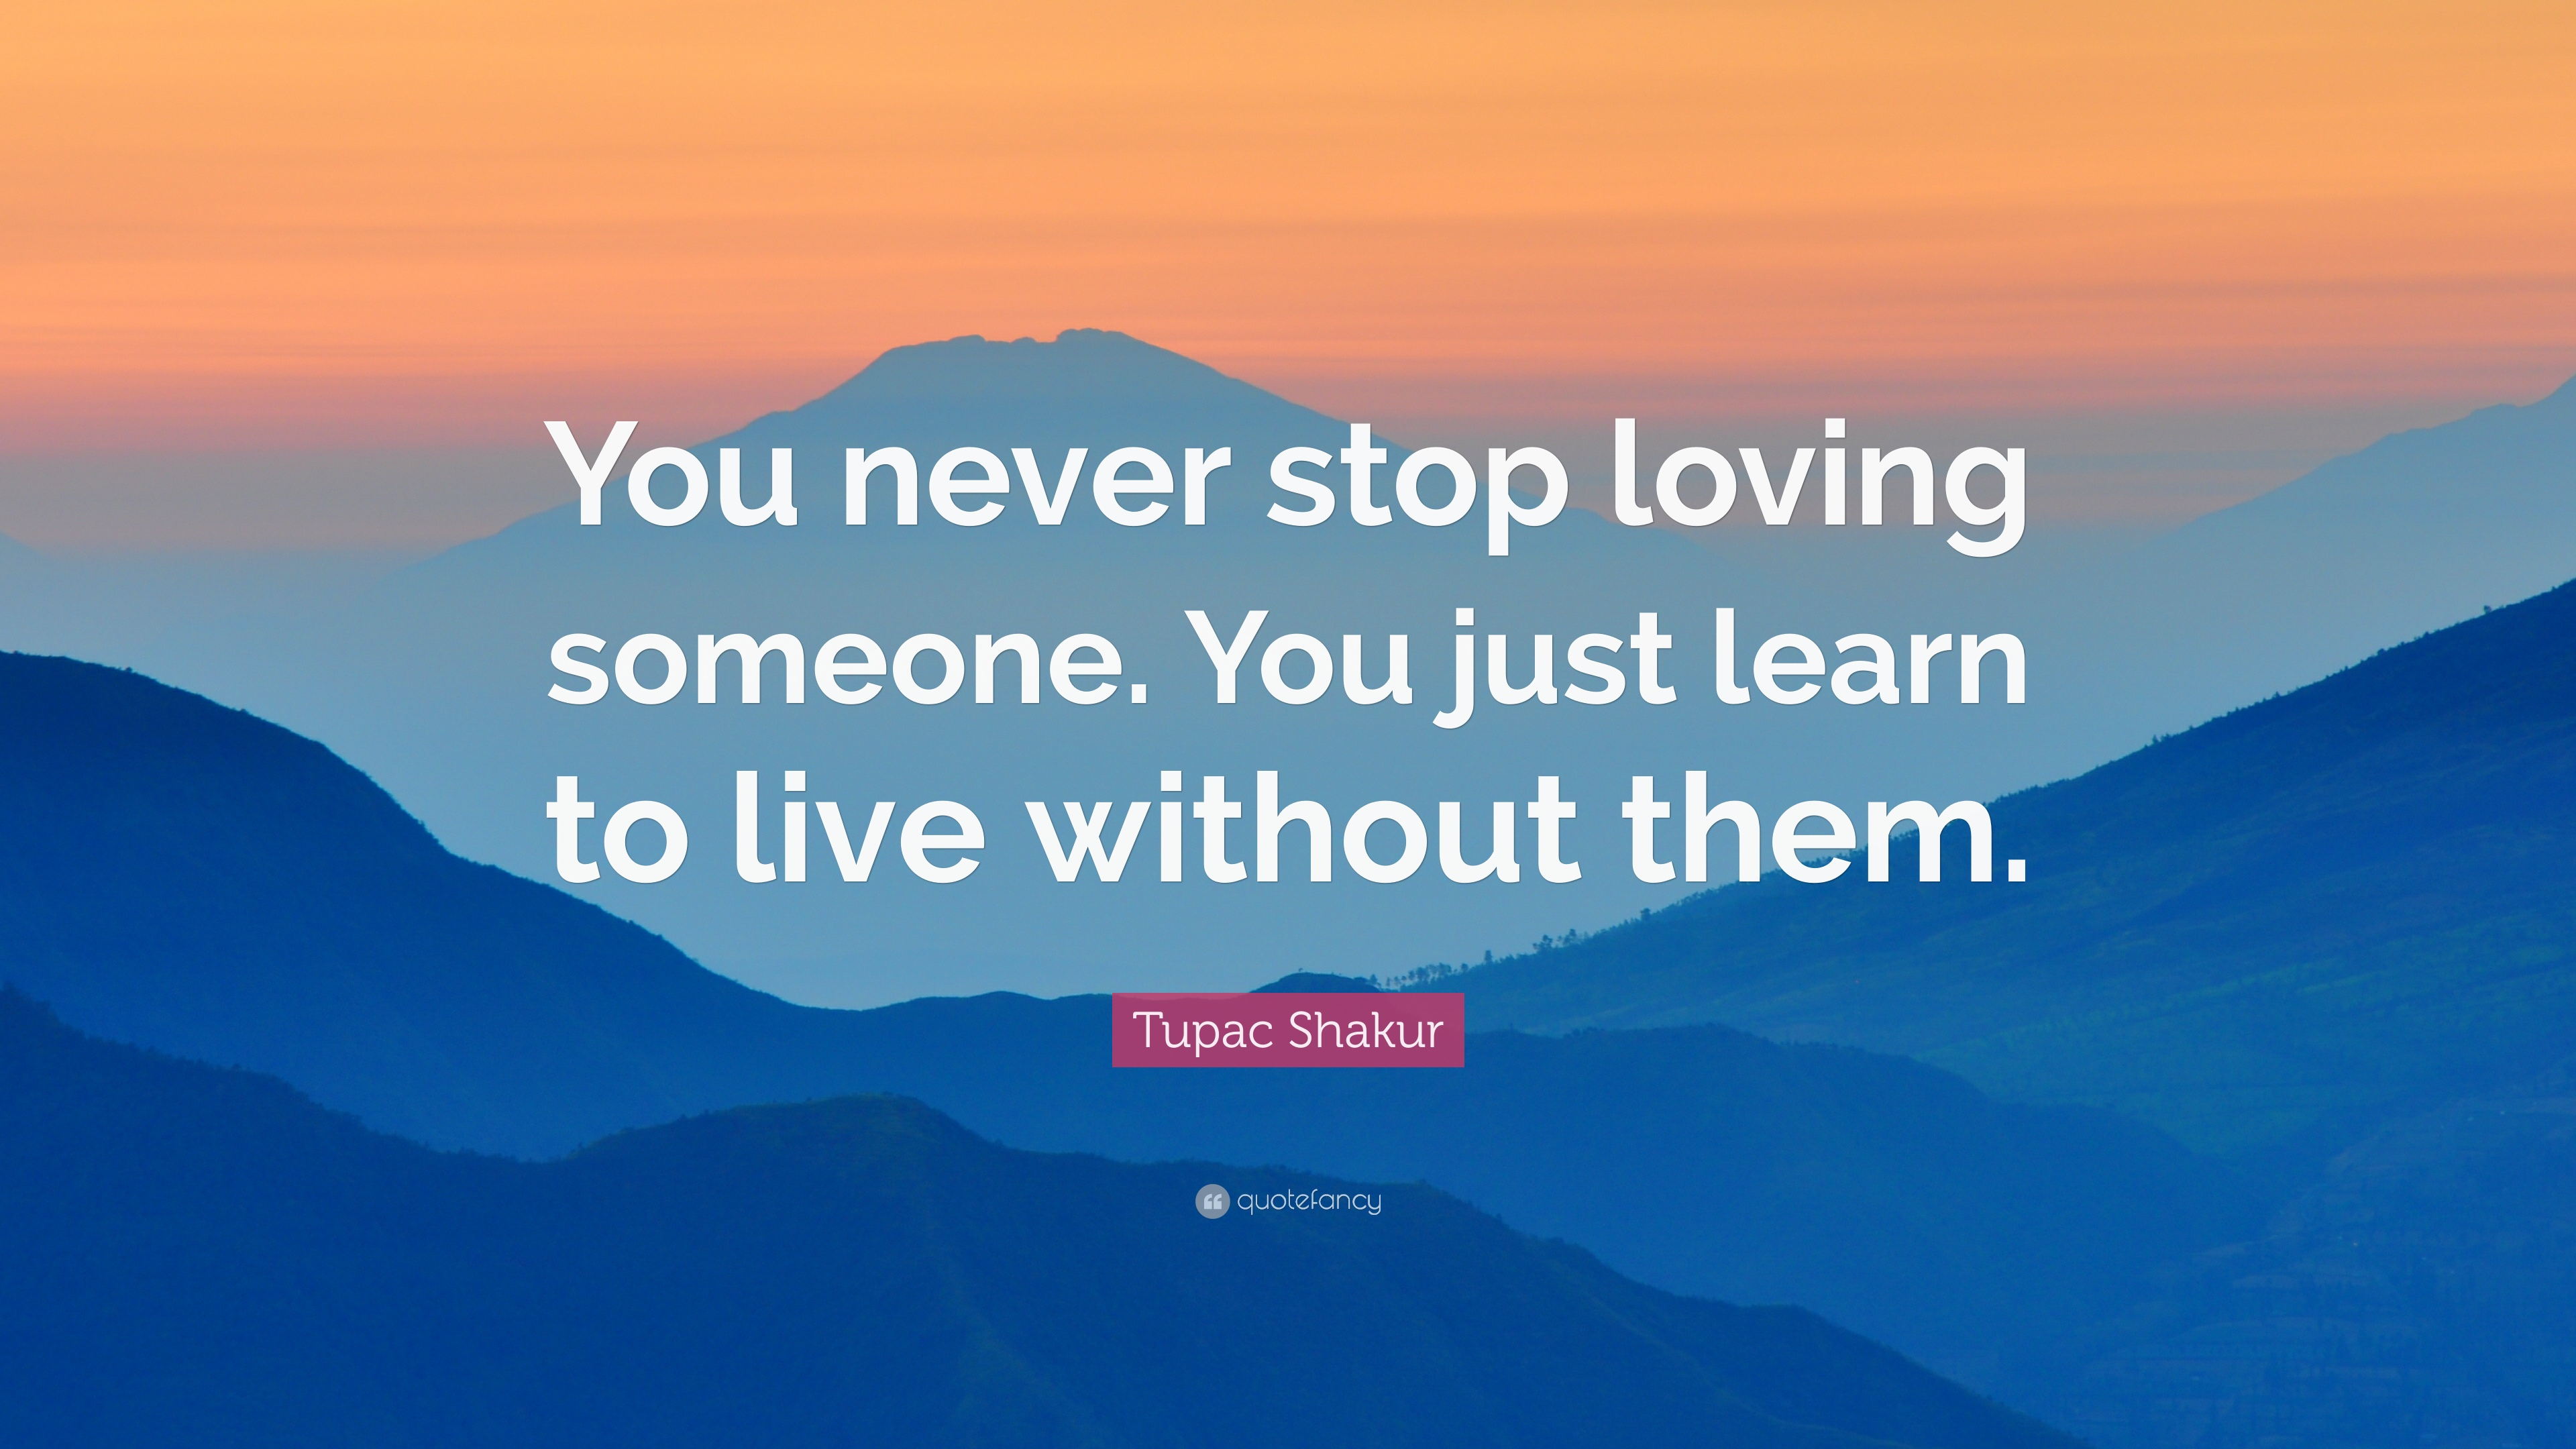 Tupac Shakur Quote: You never stop loving someone. You